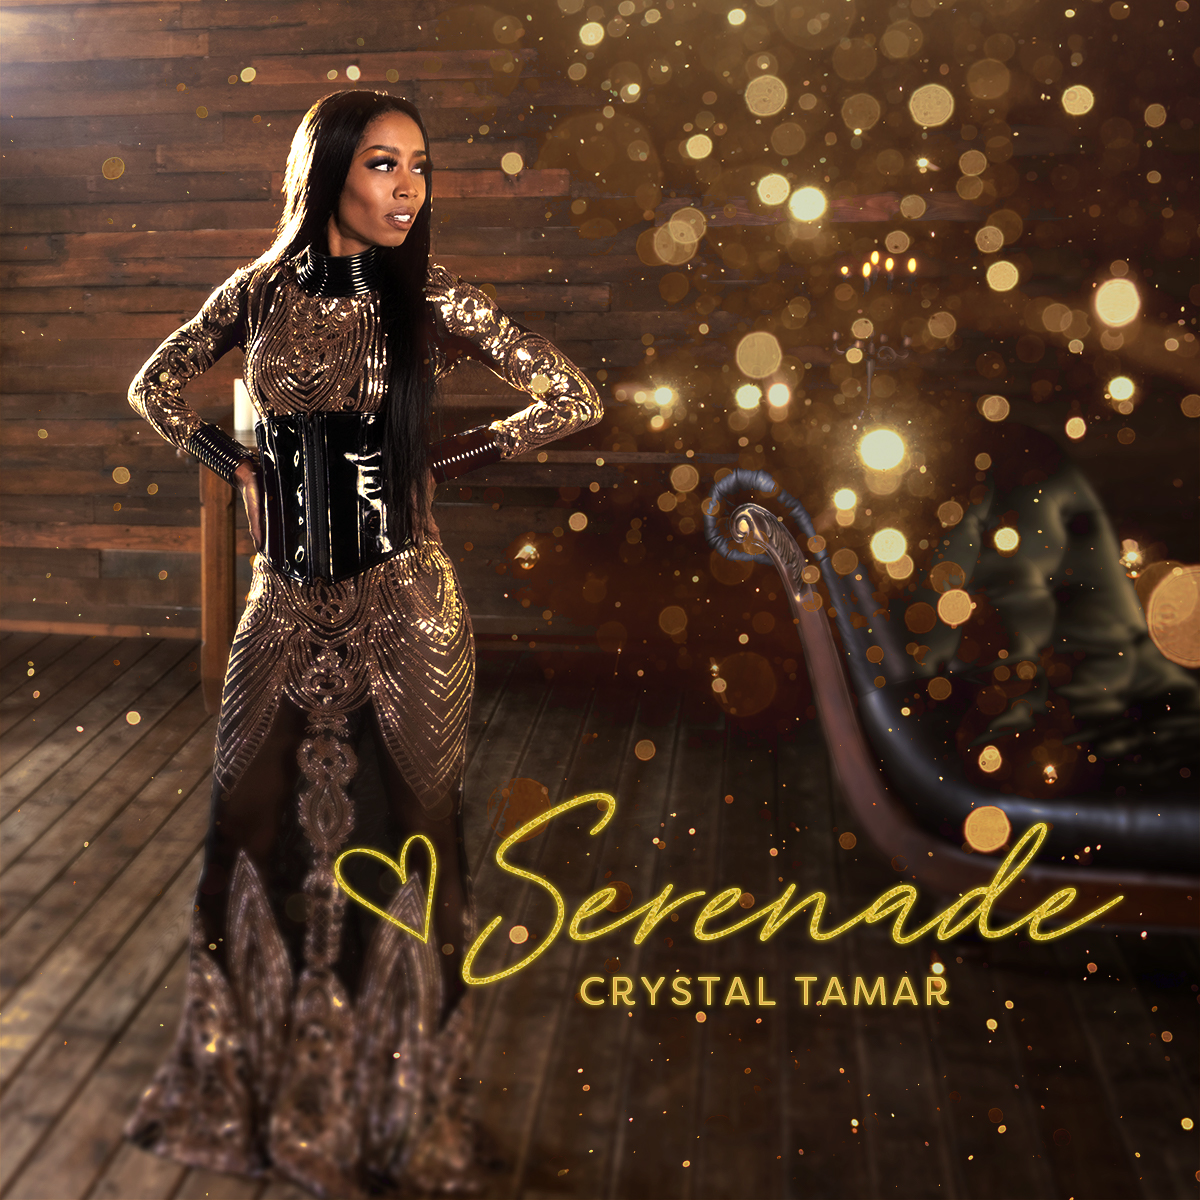 Album cover for Serenade, by Crystal Tamar. Crystal Tamar stands in front of a wood wall, wearing a gold dress and black corset as she stands with her hands on her hips. Crystal is smiling, looking over to her left.